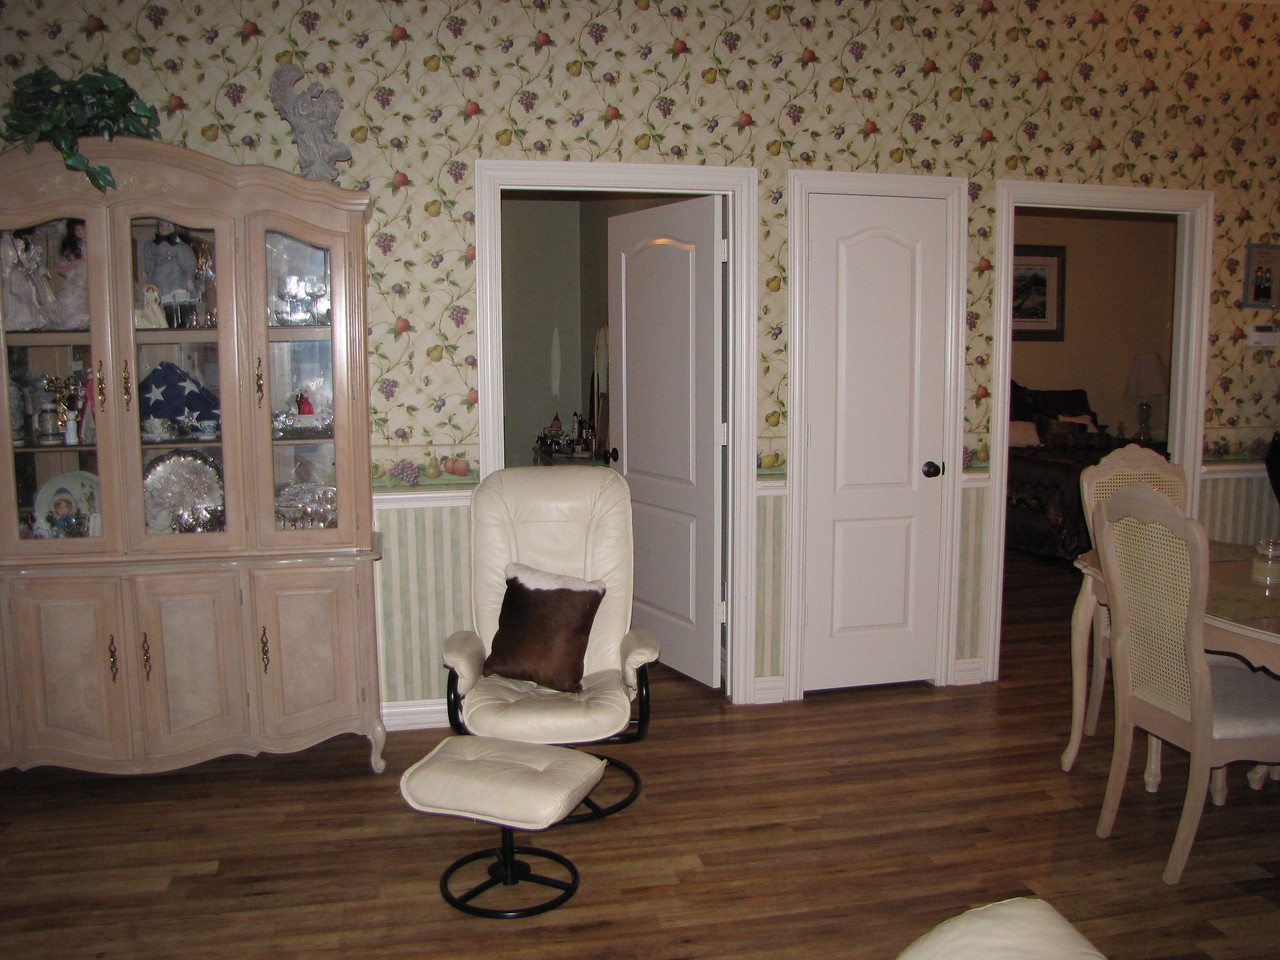 Sitting area Green Acres Garden B&B - Luxury in the country! Private Cottage on Lake Lavon...